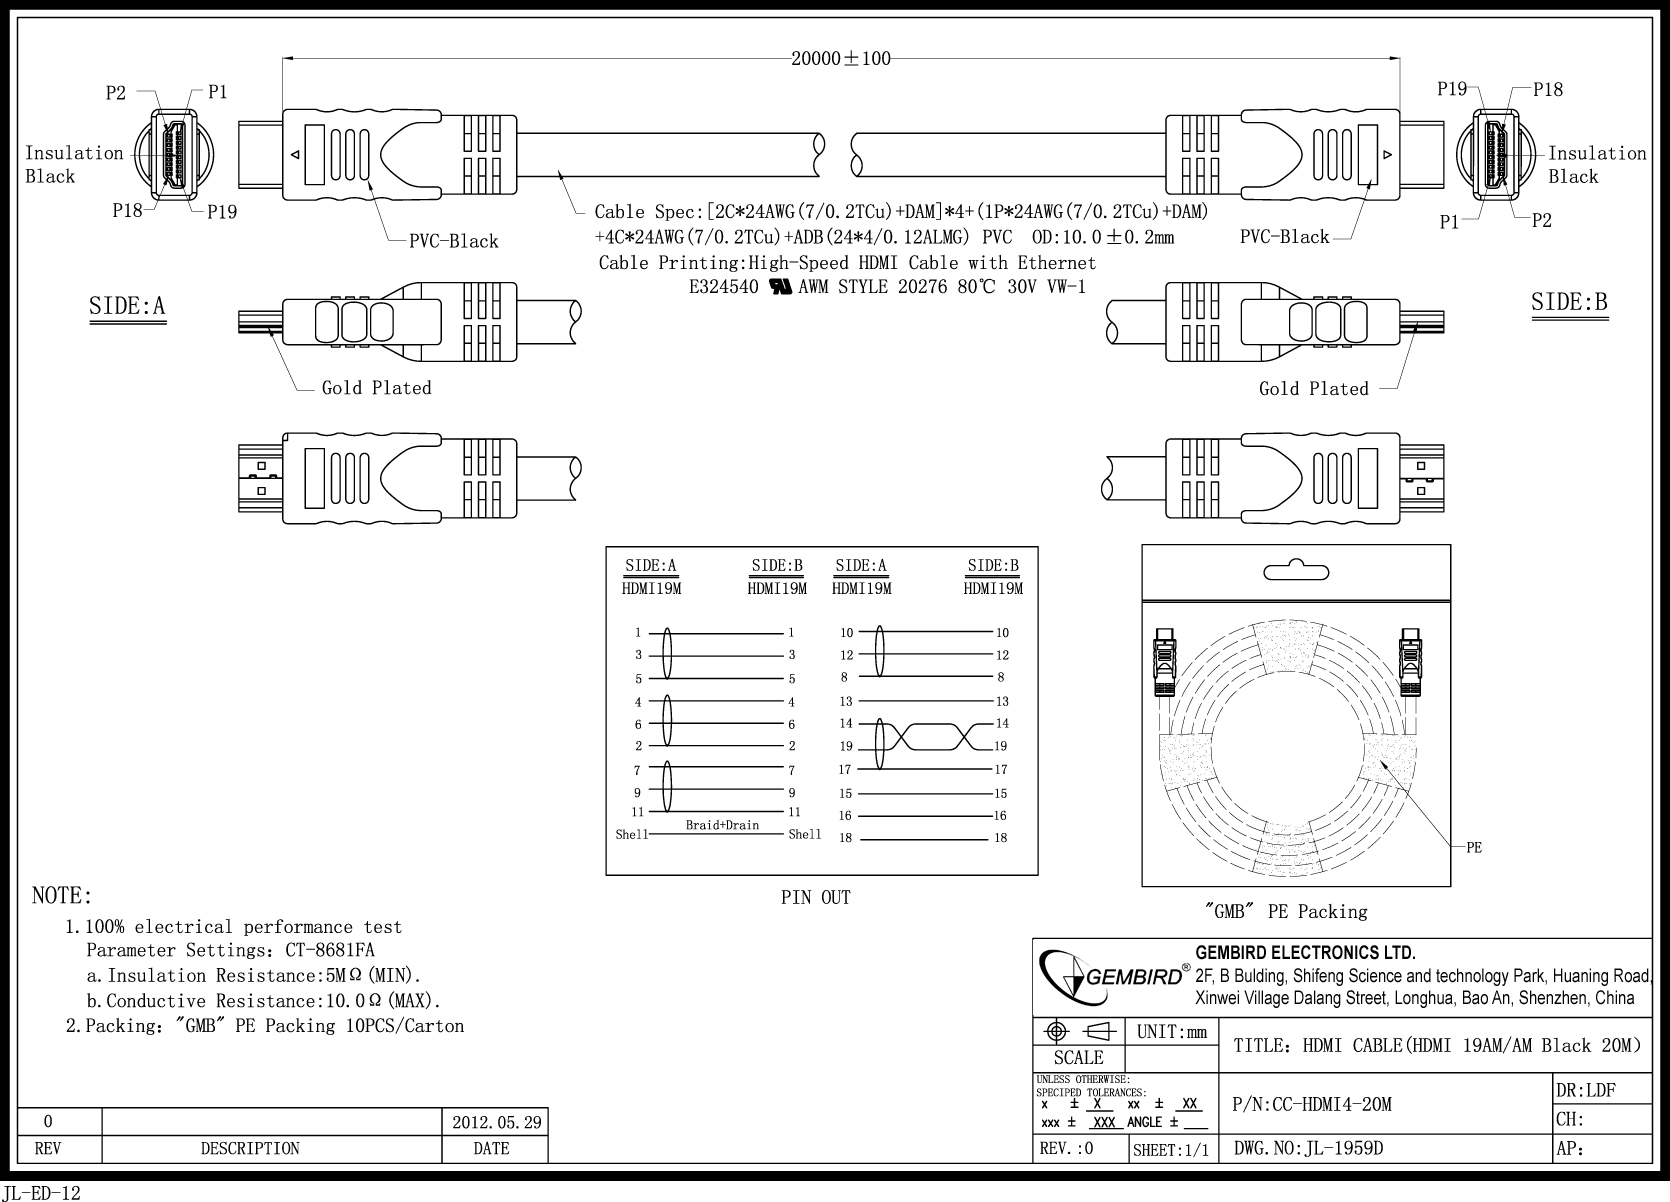 Awm Hdmi Wire Diagram Free Download Wiring Diagrams High Speed Male Cable 20 M Bulk Package Cc Hdmi4 20m 24 At Schematic